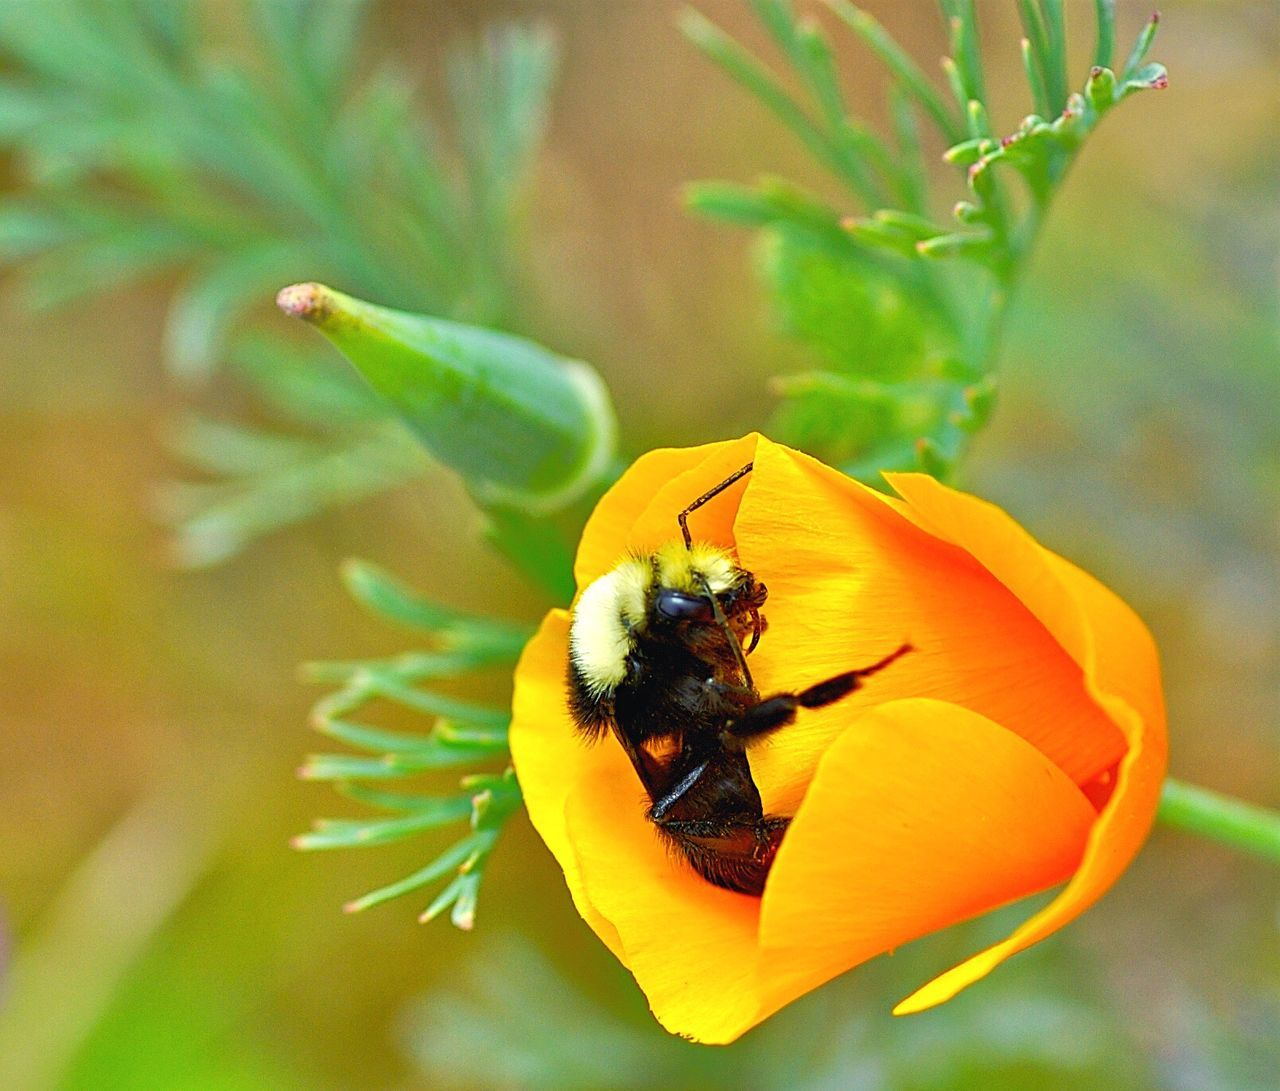 Flower Fragility Beauty In Nature Insect Bee Pollination Flower Head California Poppy Petal Koduckgirl